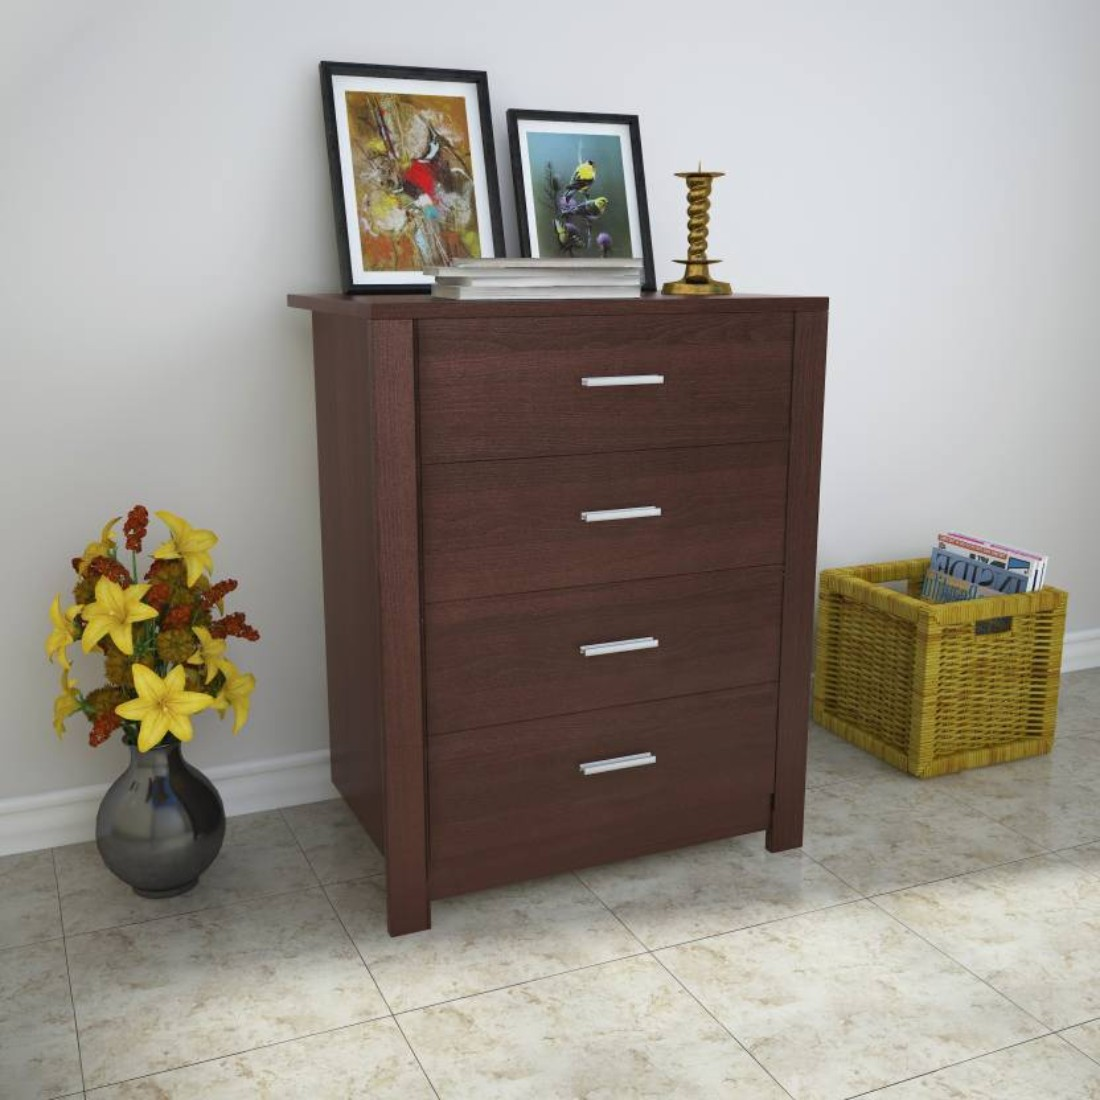 Renley Engineered Wood Chest of Drawers in Beech Chocolate Colour by HomeTown